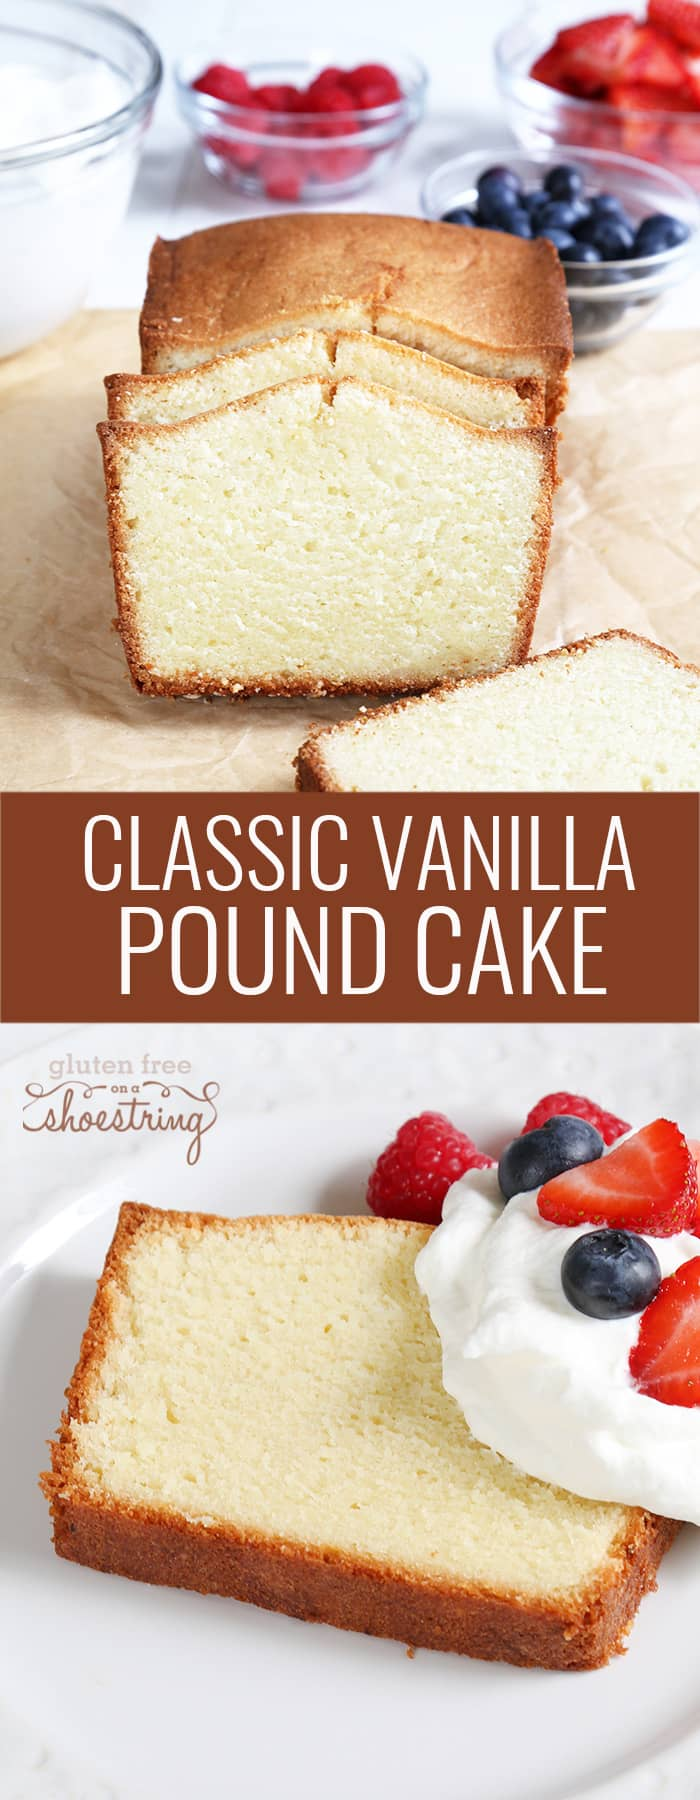 Pound cake on white plate and on brown surface